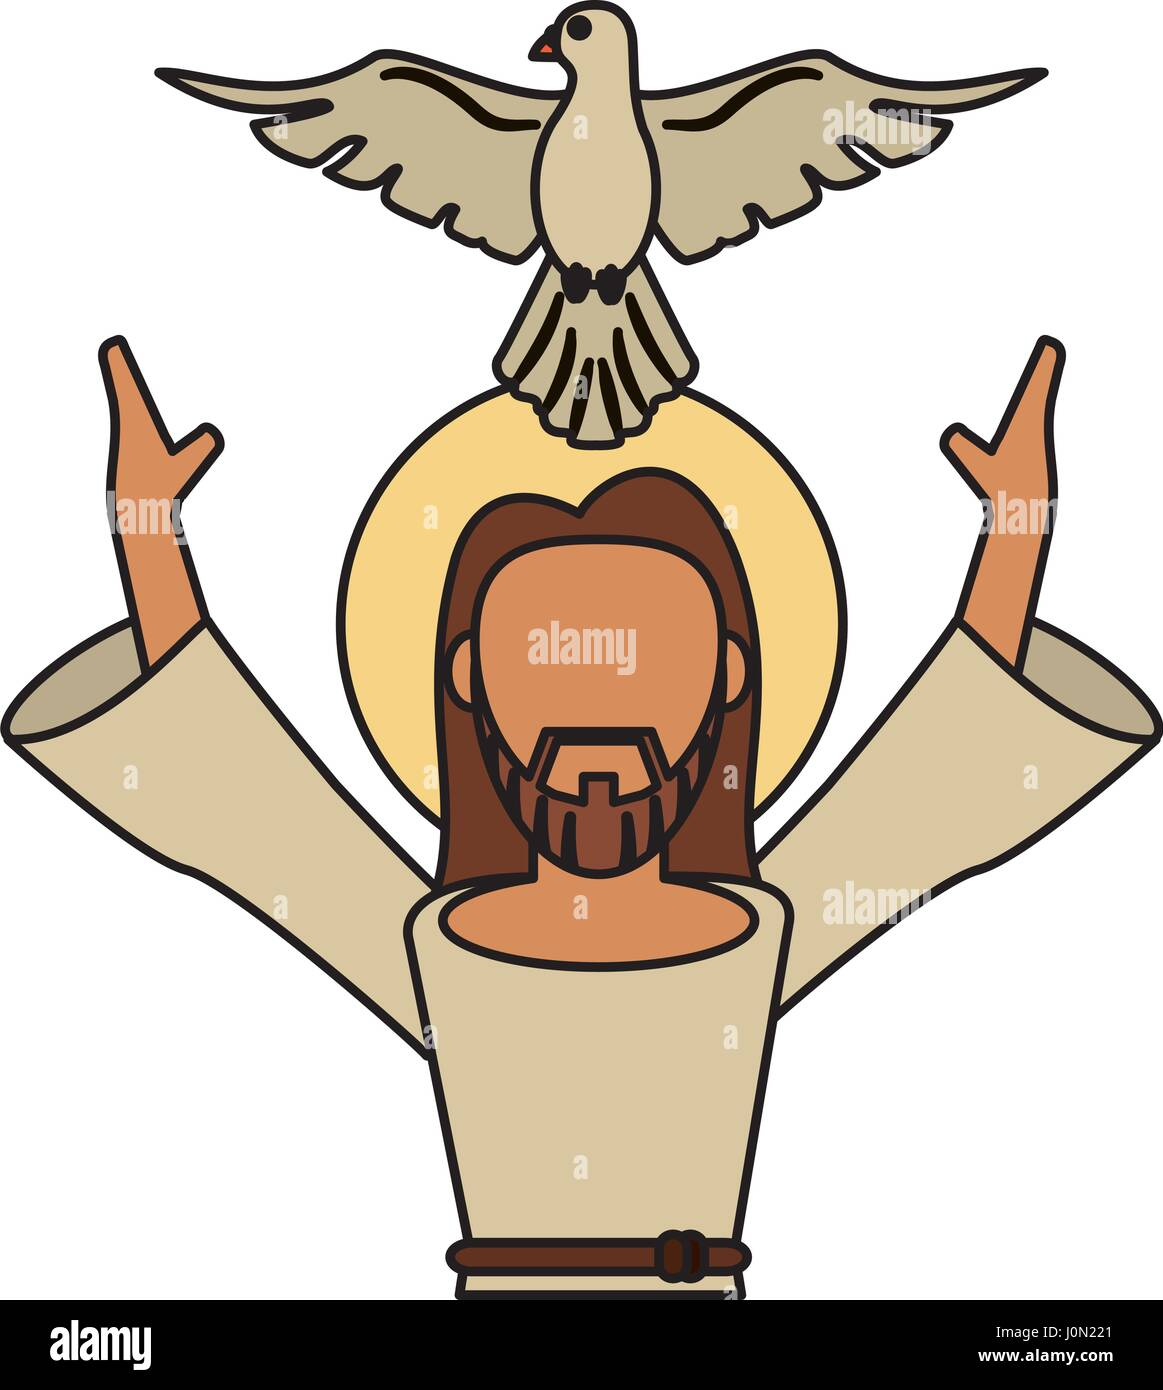 In the Name of the Father, and of the Son, and of the Holy Spirit #Clipart  | Holy spirit, Prayers, Peace symbol